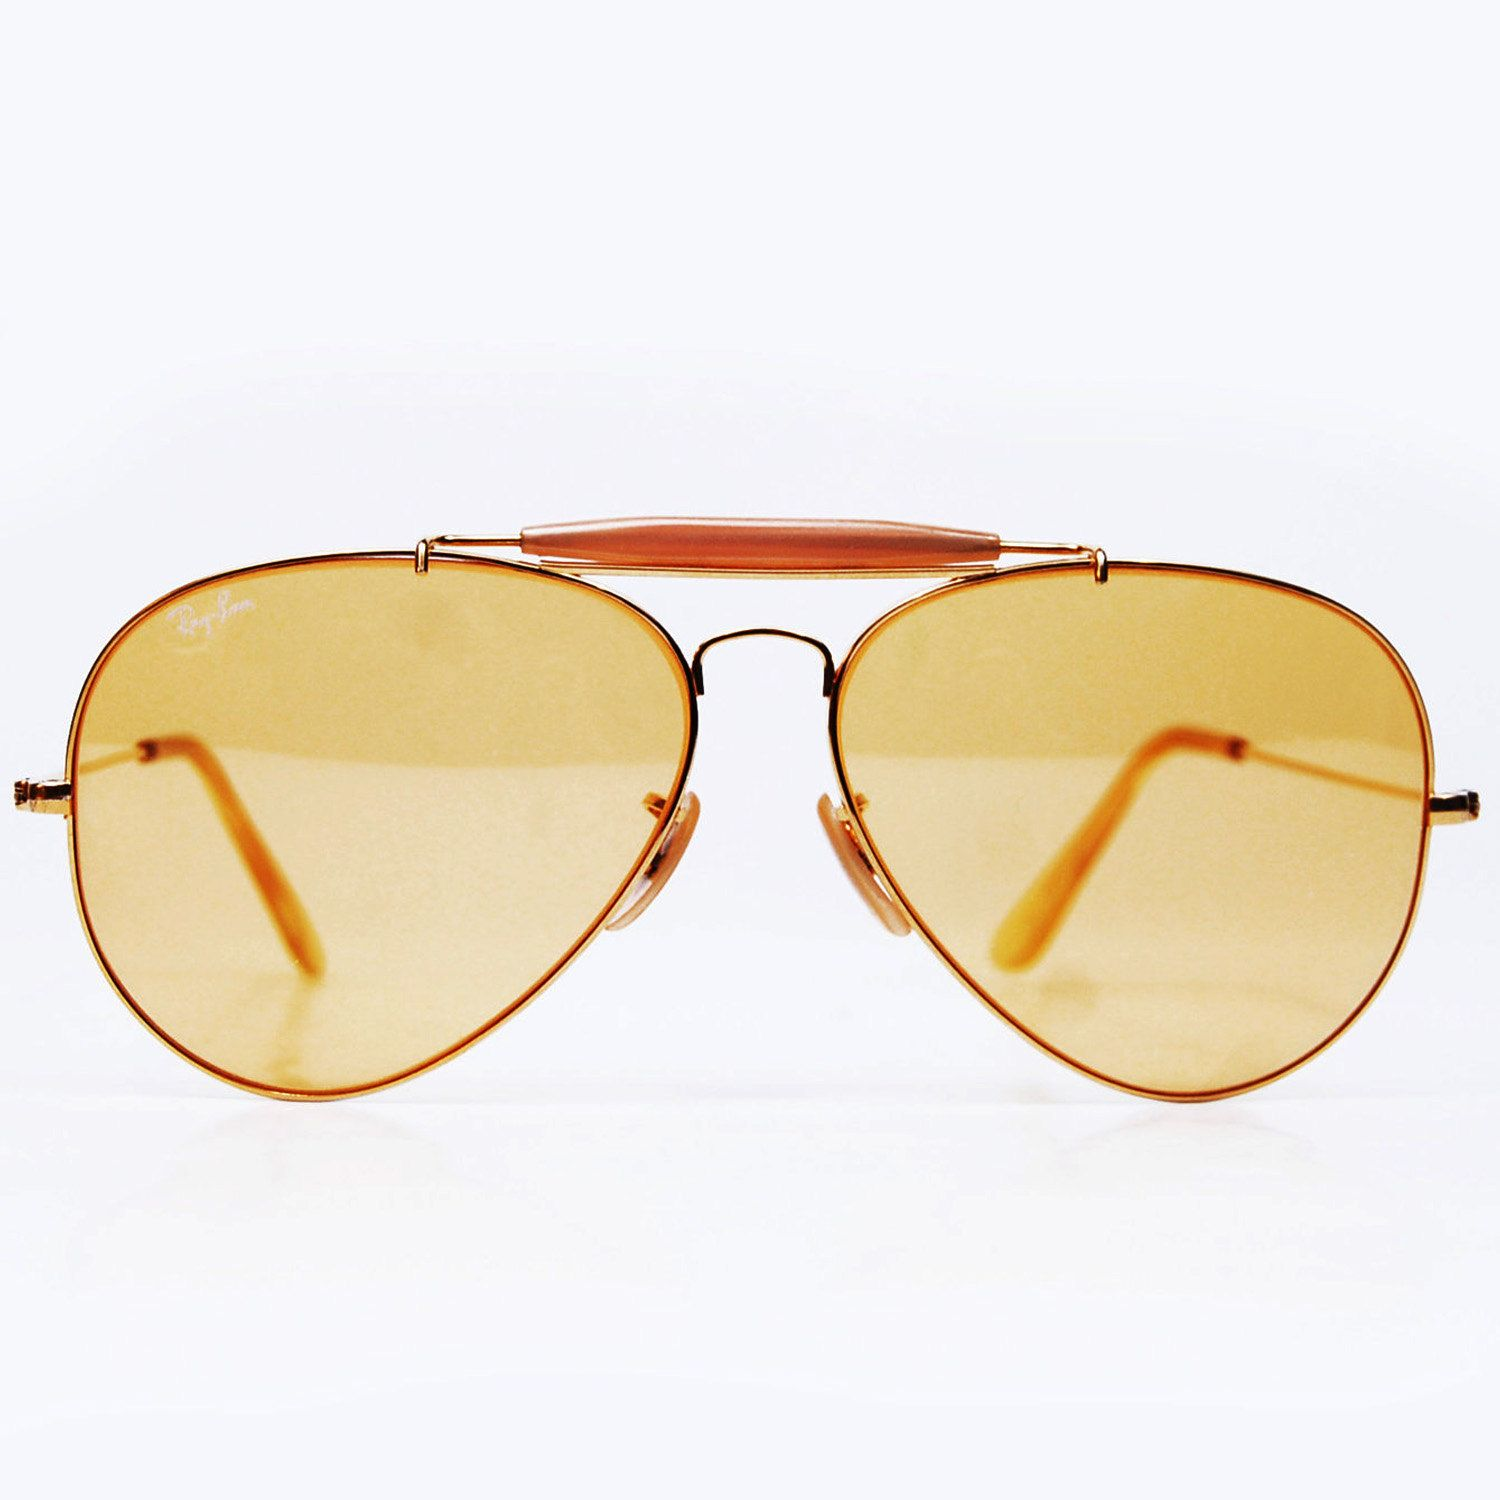 Vintage Ray Ban Sunglasses Bausch And Lomb Ambermatic Yellow Aviators 62mm Sunglasses For Your Face Shape Designer Sonnenbrille